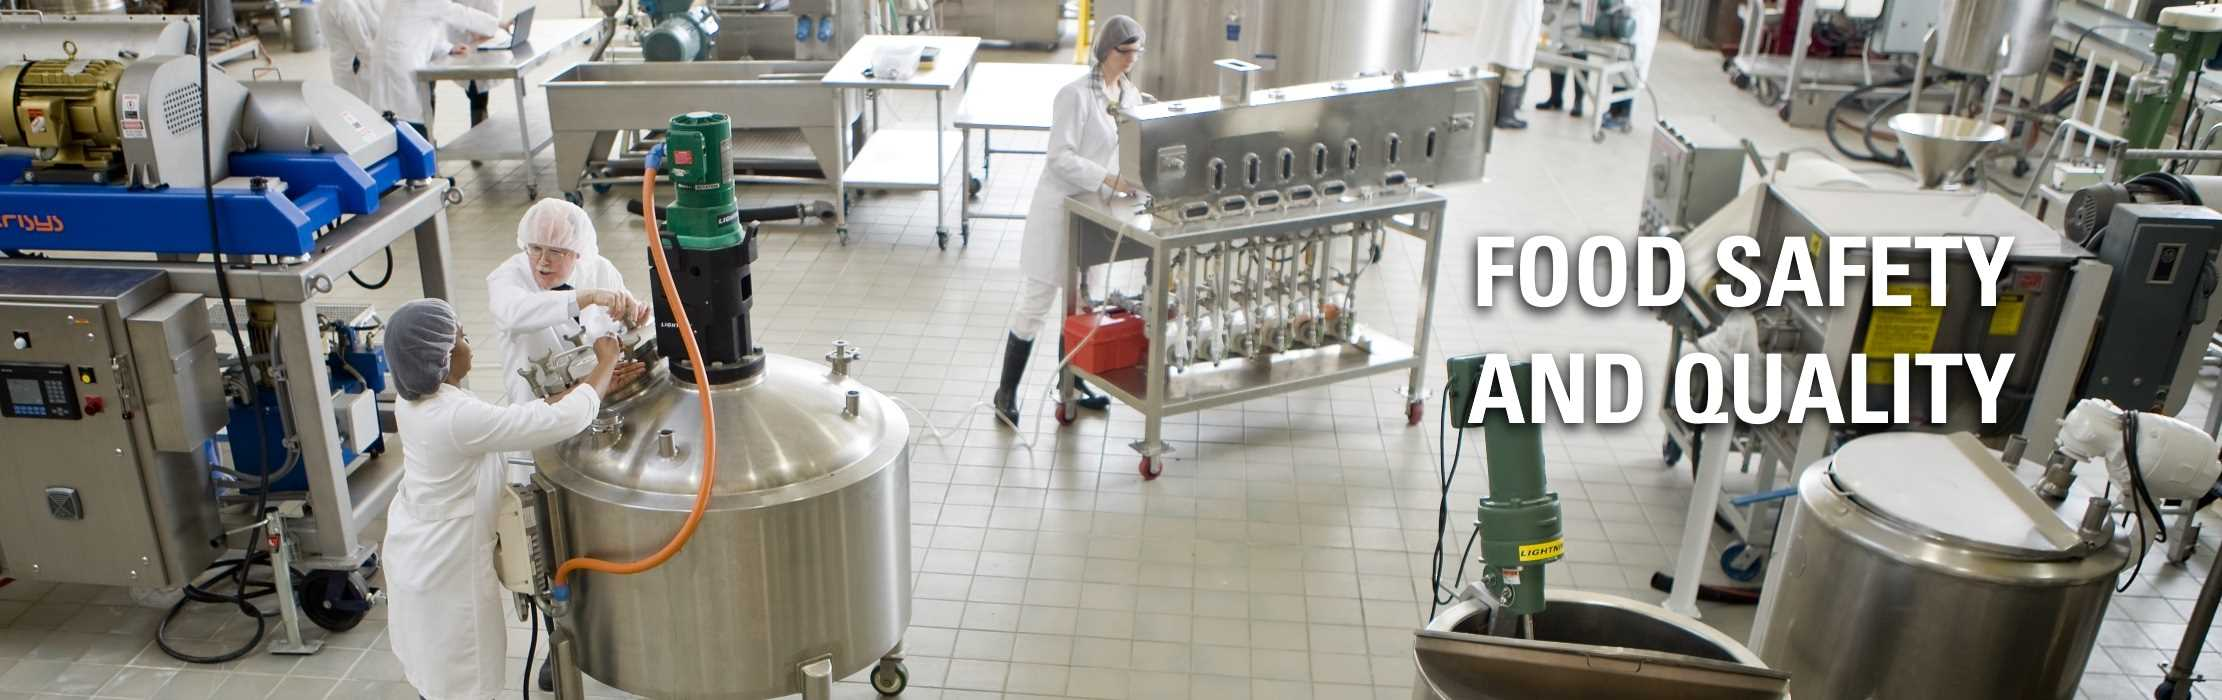 Technicians working in a food processing incubator: Food Safety and Quality.